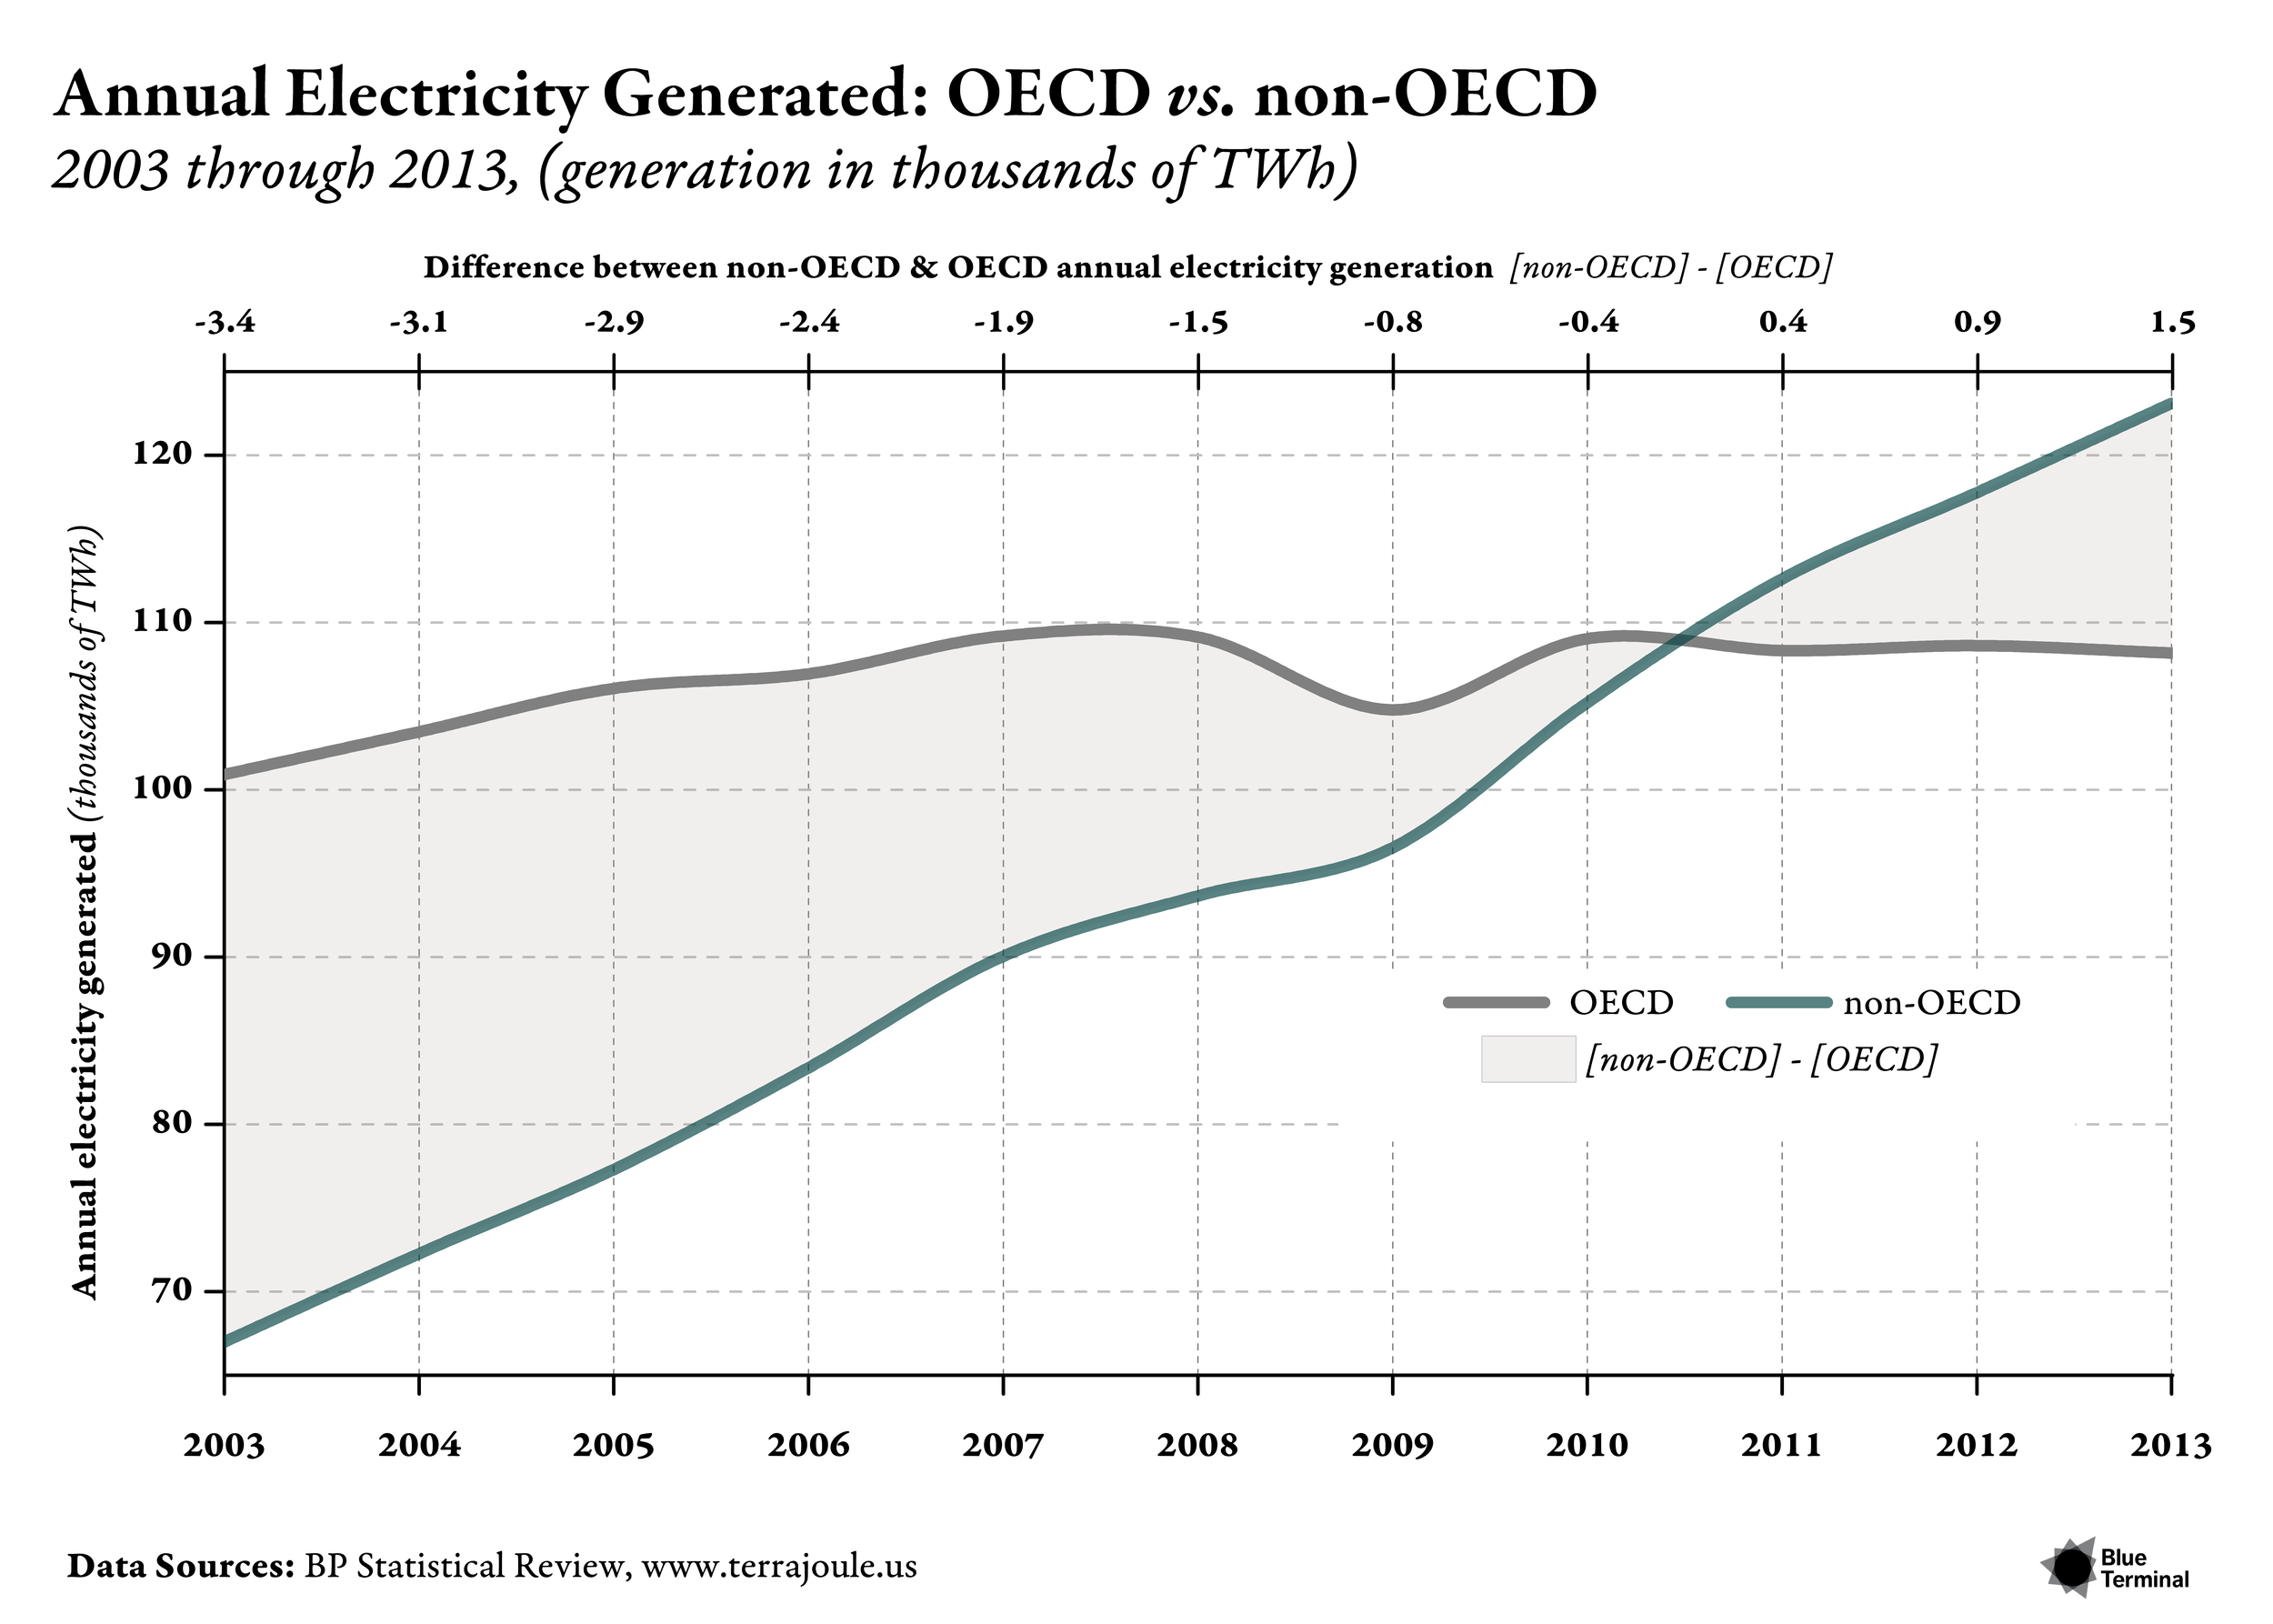 ANNUAL ELECTRICITY GENERATED: OECD VS. NON-OECD    Release Date  : June 2014  Client  : June 2014 Issue of Terrajoule.us   This plot draws on source data from the 2014 BP Statistical Review to display trends of OECDelectricity generation from 2003 to 2013. Several notable features of this plot are indicative ofhow we like to plot macro-trends.  Because figures like this are useful for making quick comparisons, in this case between theOECD and the non-OECD, we highlight the delta between each in two different ways: (1) byshading the difference and (2) by adding a top x-axis that provides the value for [non-OECD] -[OECD] in each year